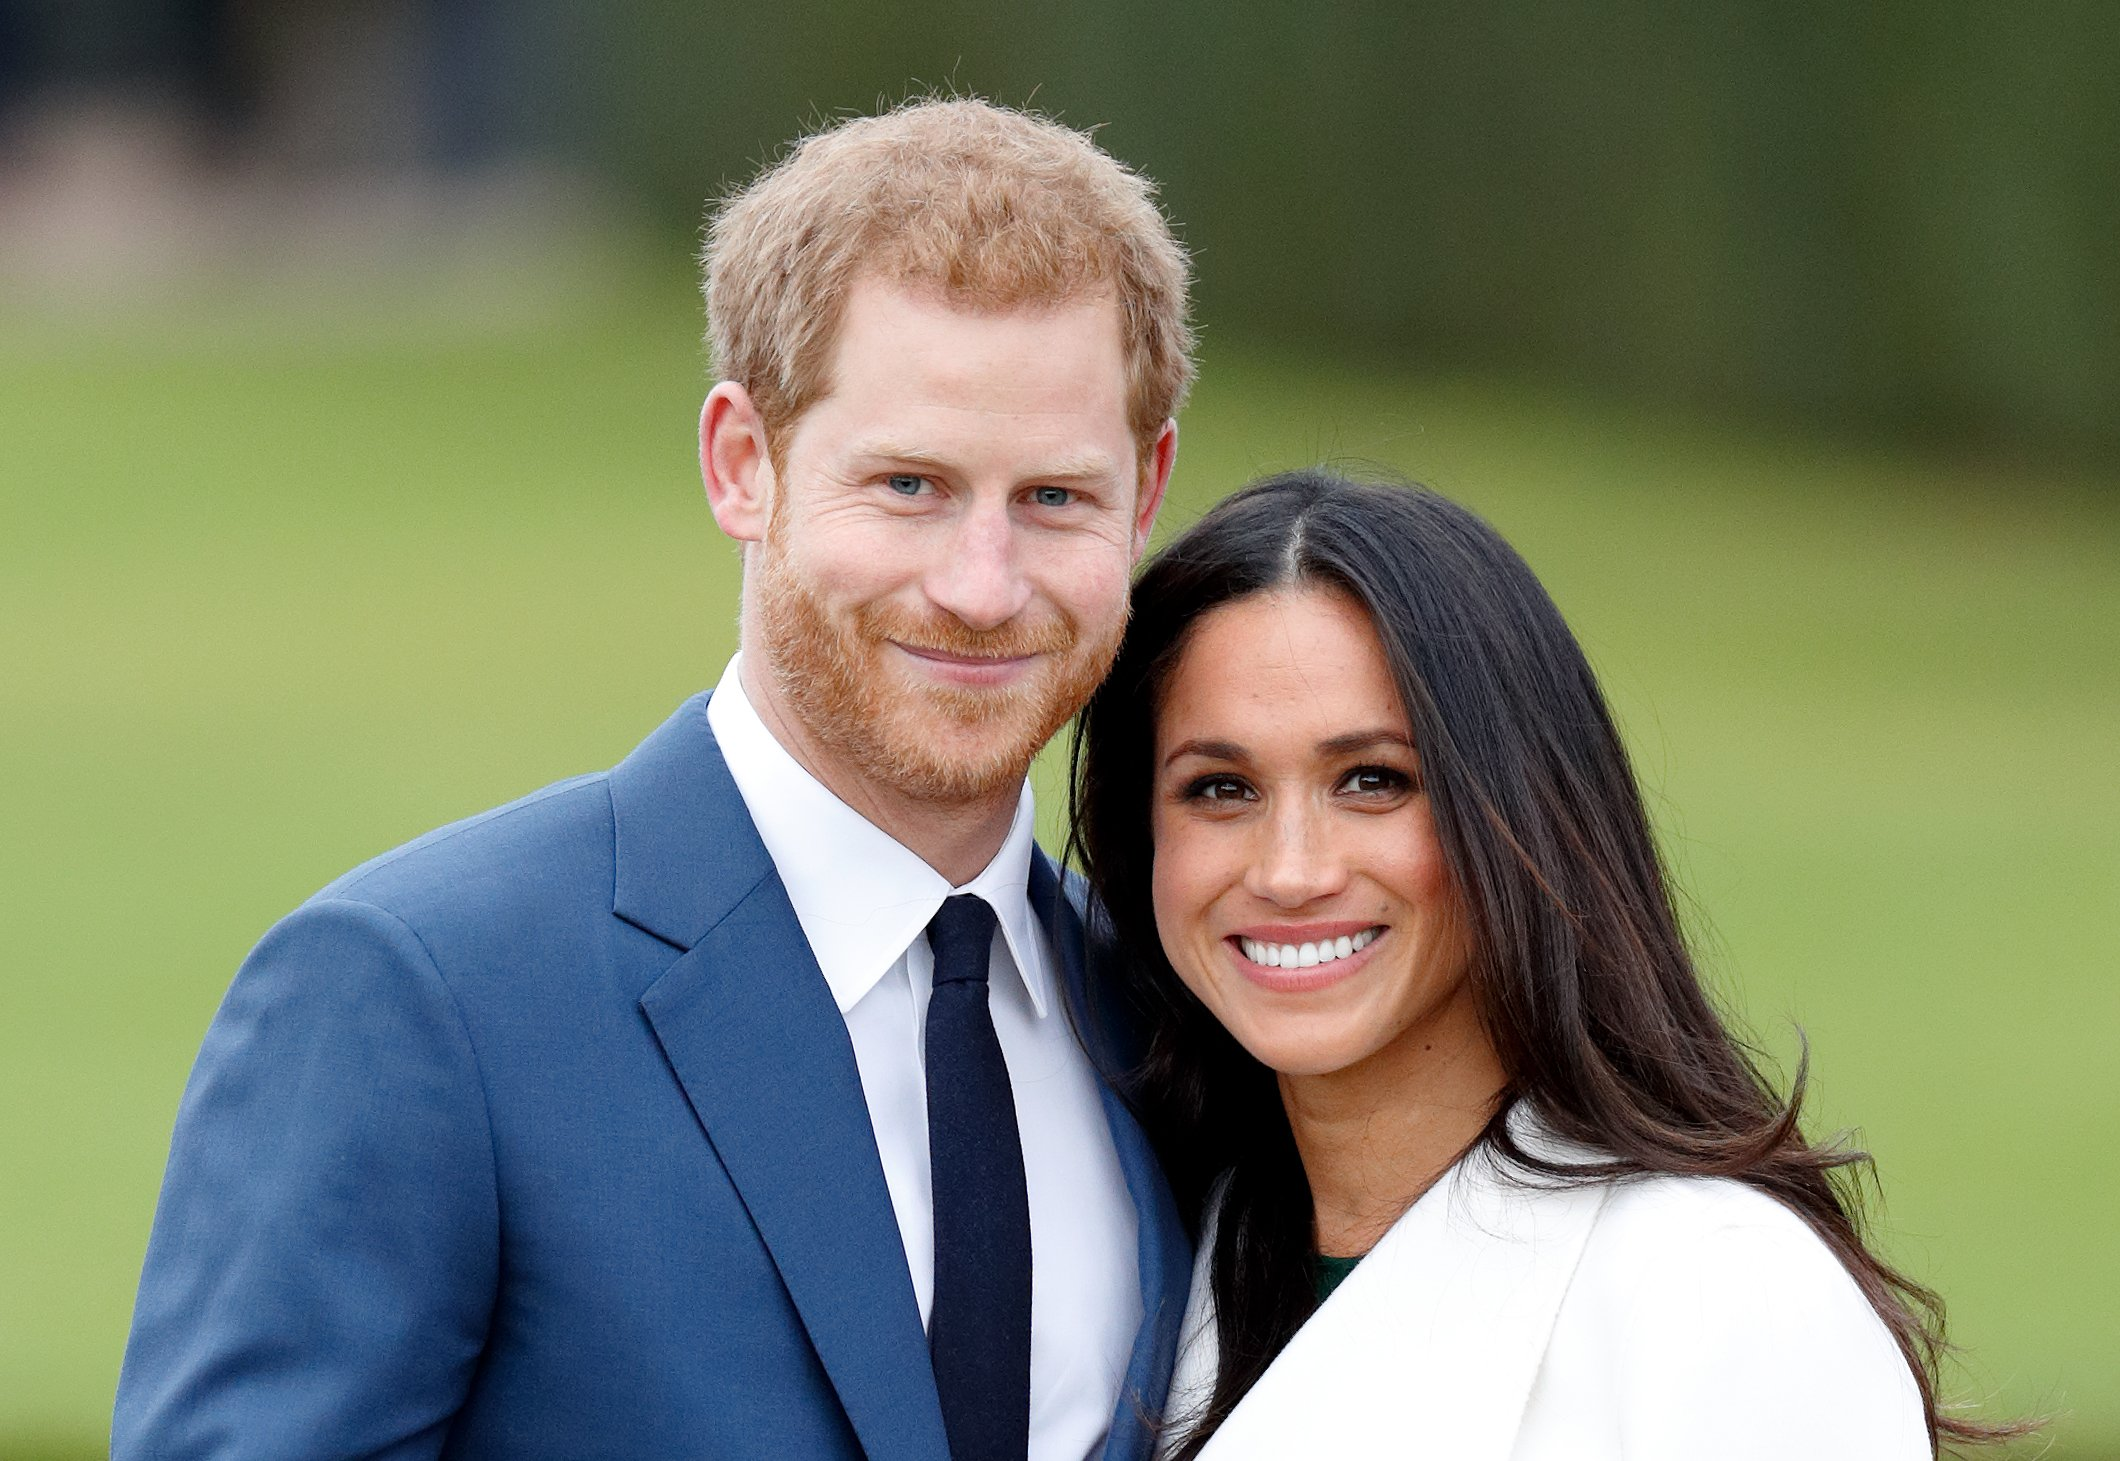 Prince Harry and Meghan Markle attend an official photocall to announce their engagement at The Sunken Gardens, Kensington Palace on November 27, 2017 in London, England | Photo: Getty Images